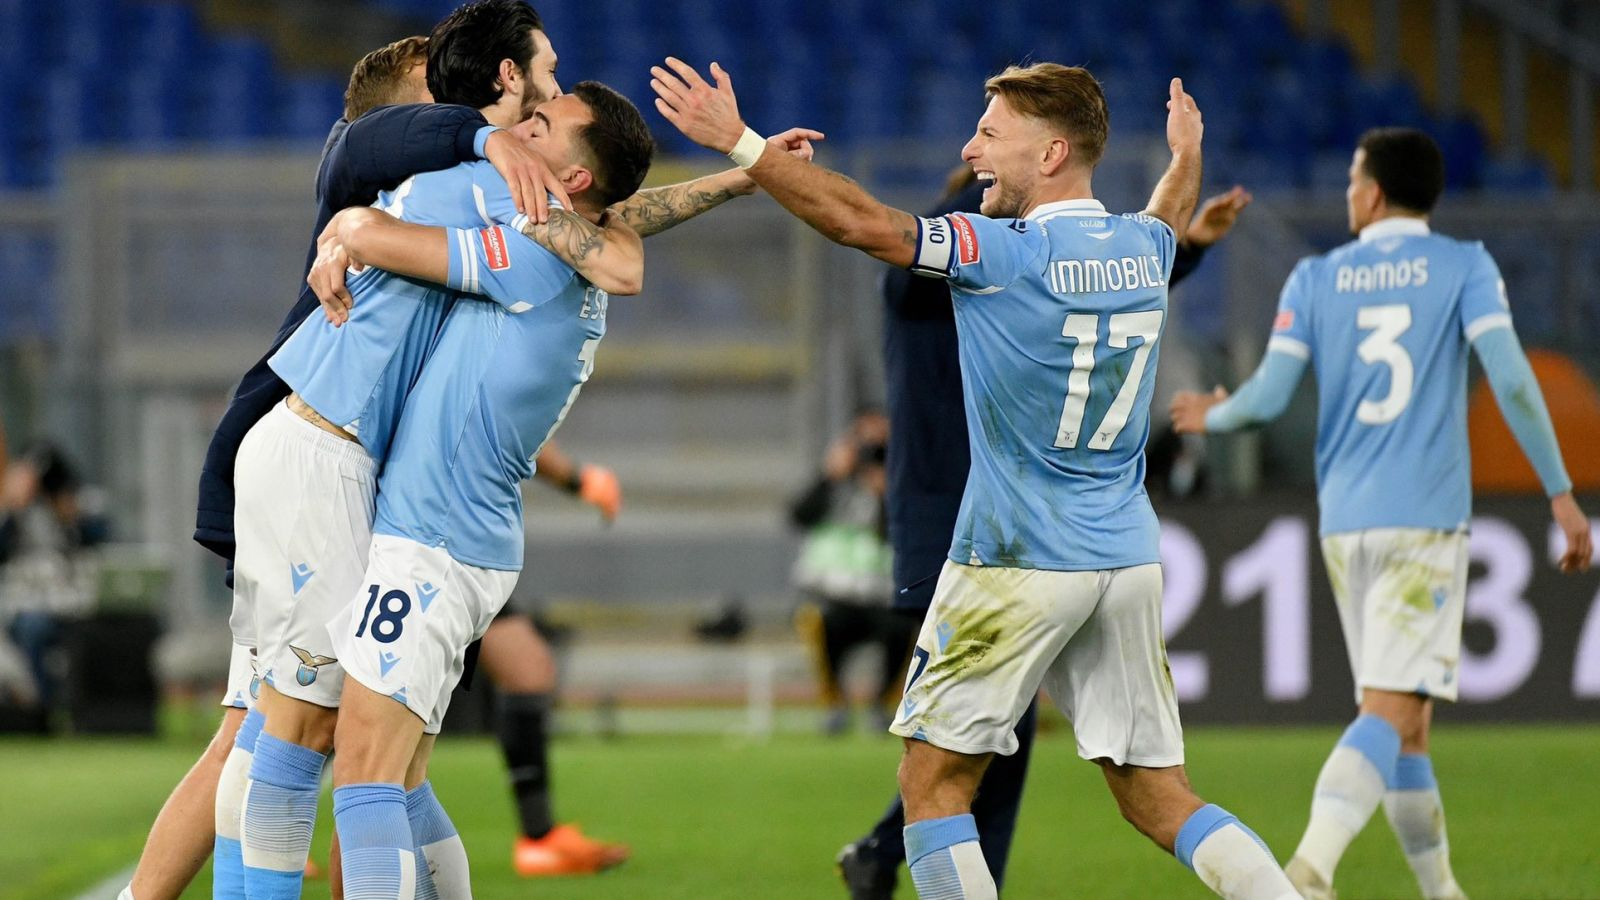 Live Streaming Coppa Italia: Lazio vs Parma